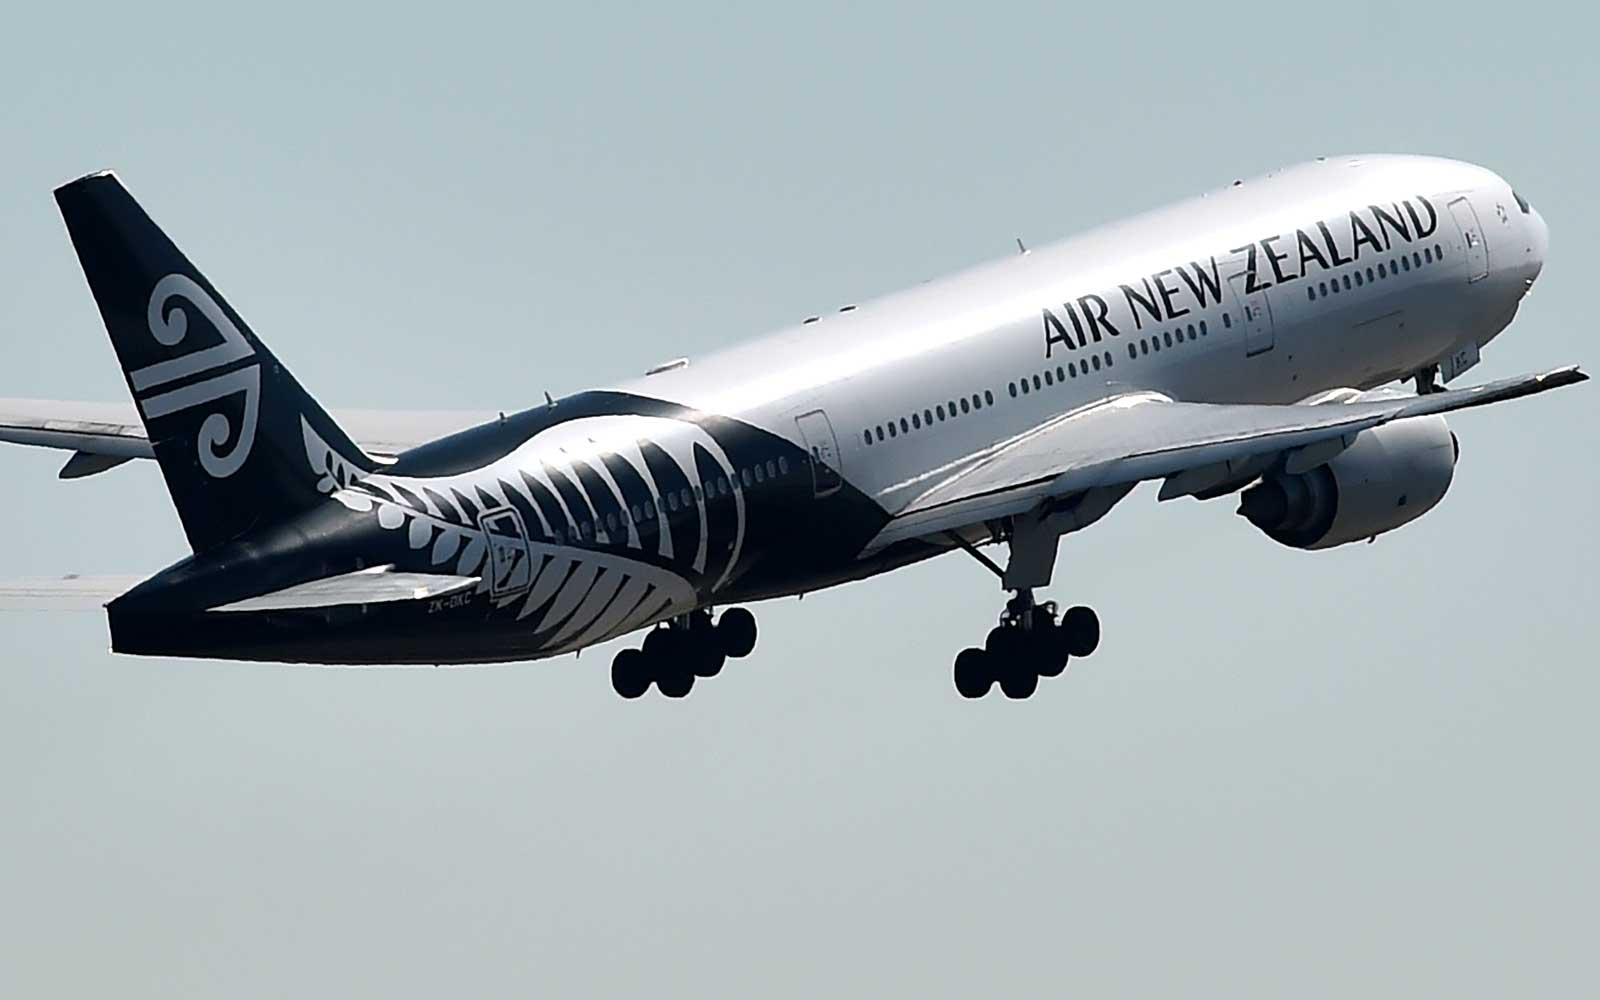 Air New Zealand Is the Latest Airline to Offer Free Wi-Fi